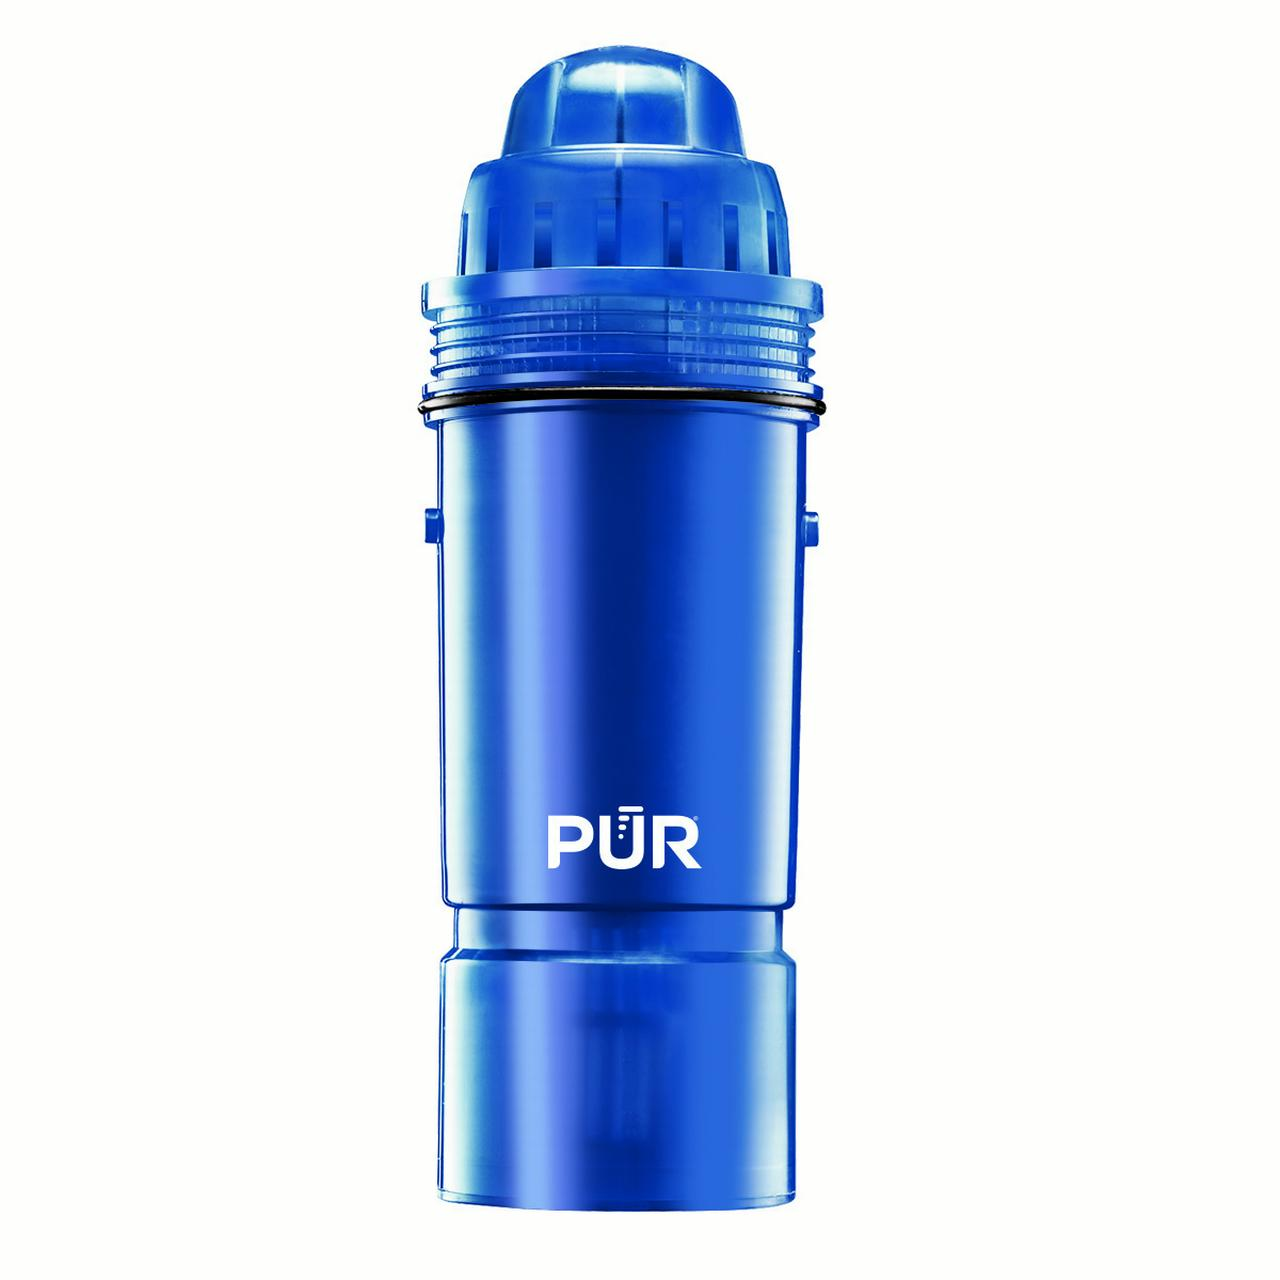 PUR Basic Pitcher/Dispenser Water Replacement Filter, CRF950Z, 3 Pack